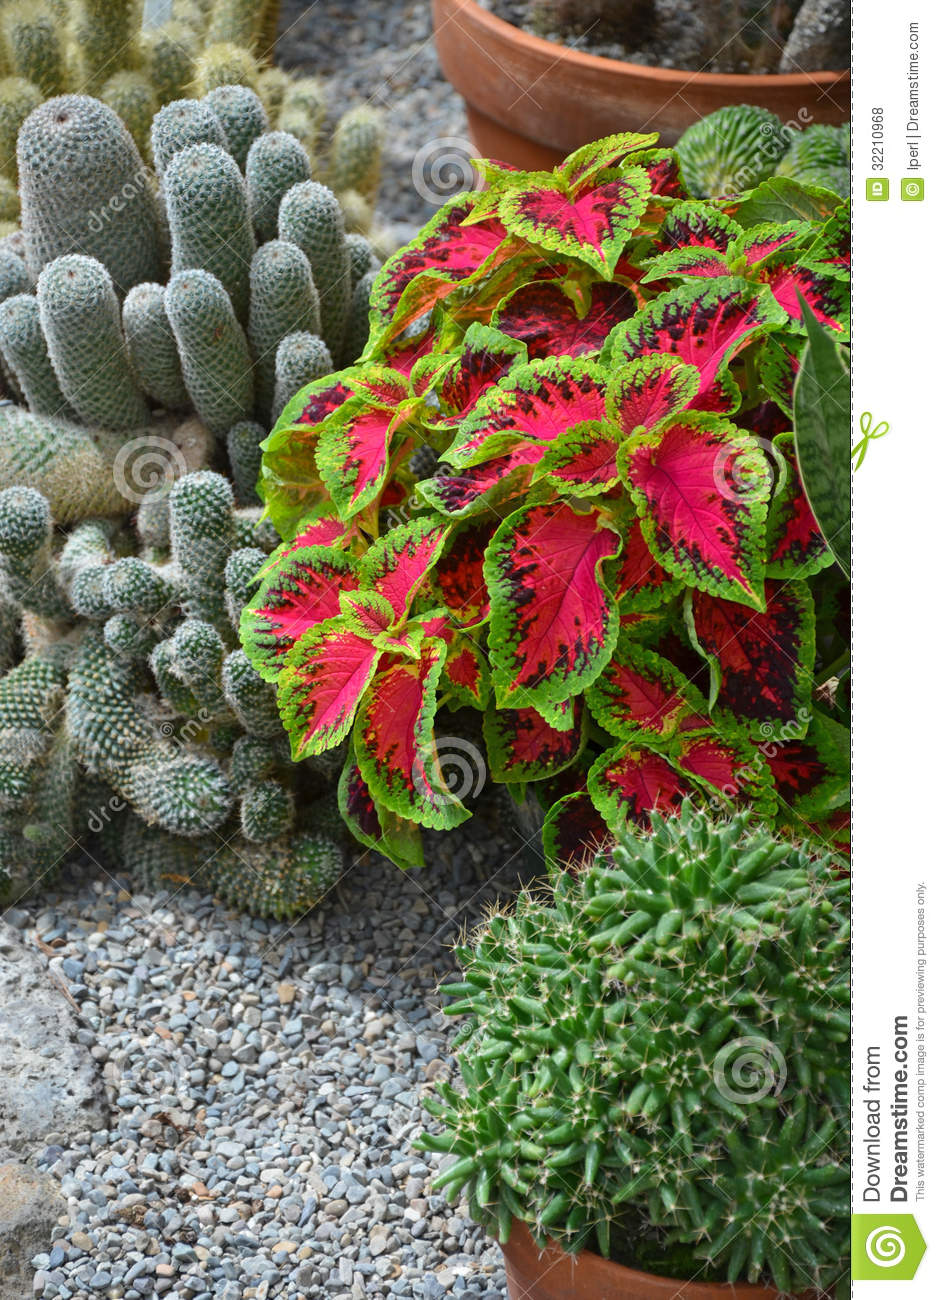 Potted Plants In Garden Plan Toys Play House Potted Plants In - cactus garden plan